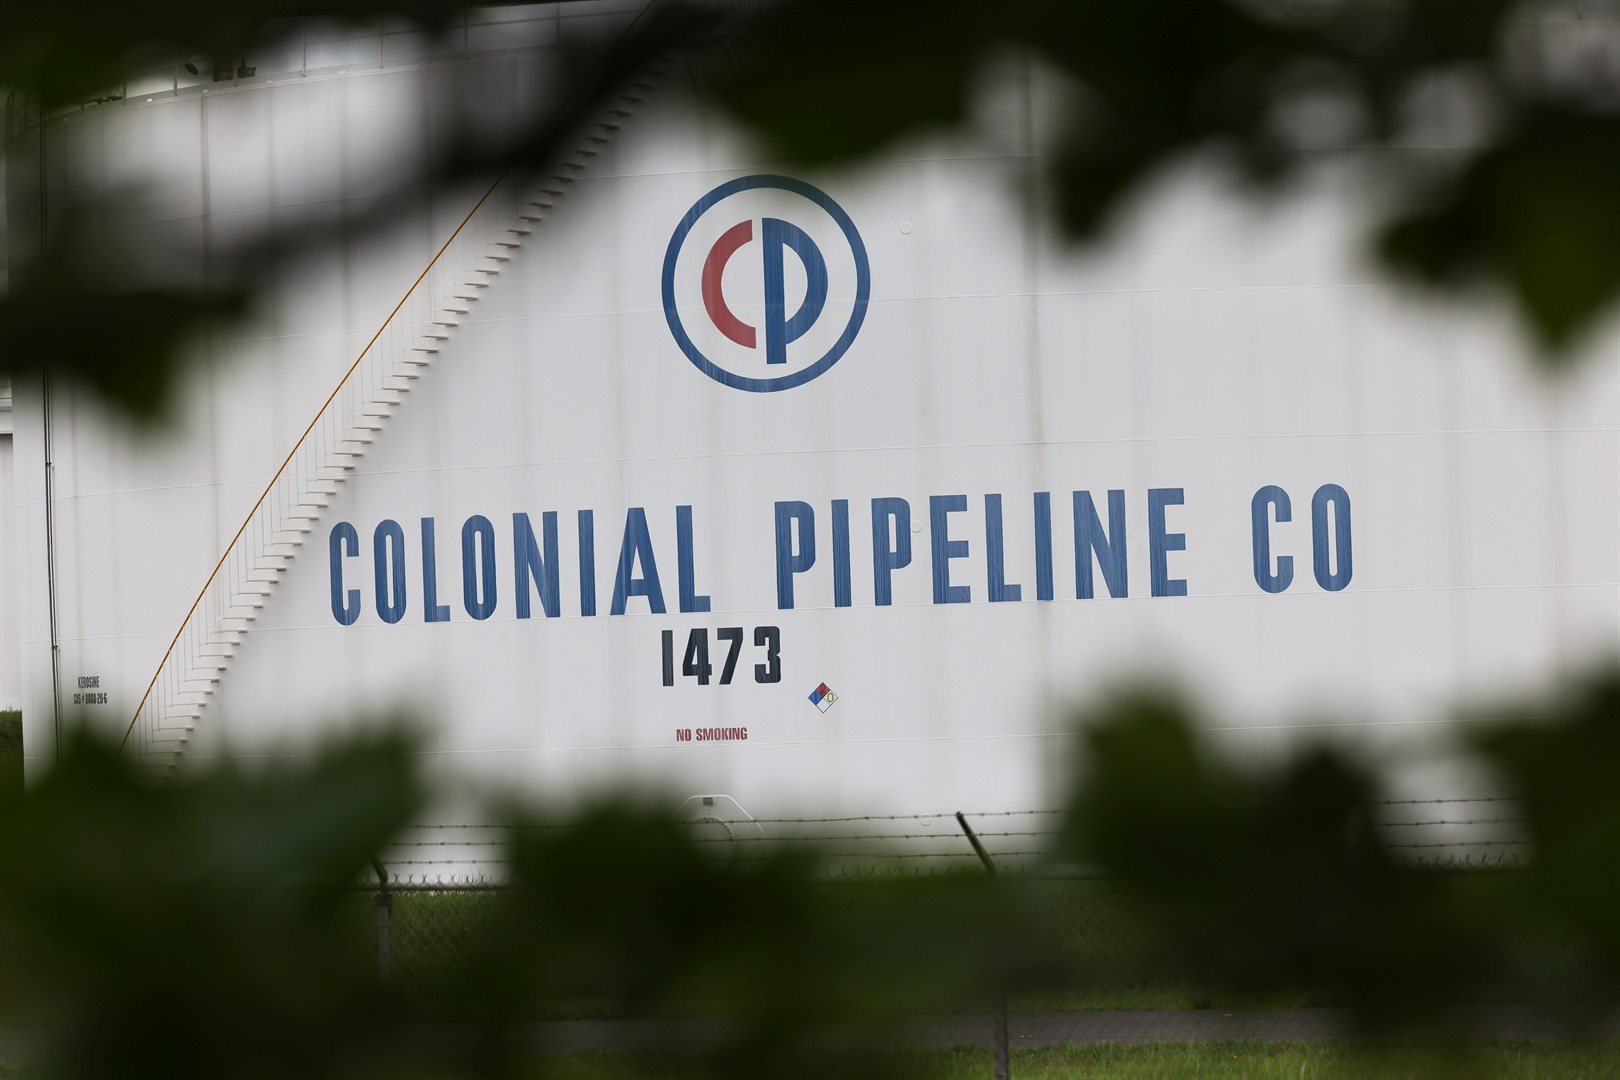 Colonial Pipeline was forced to shut down its oil and gas pipeline system on Friday after a ransomware attack that has slowed down the transportation of oil across the Eastern US.